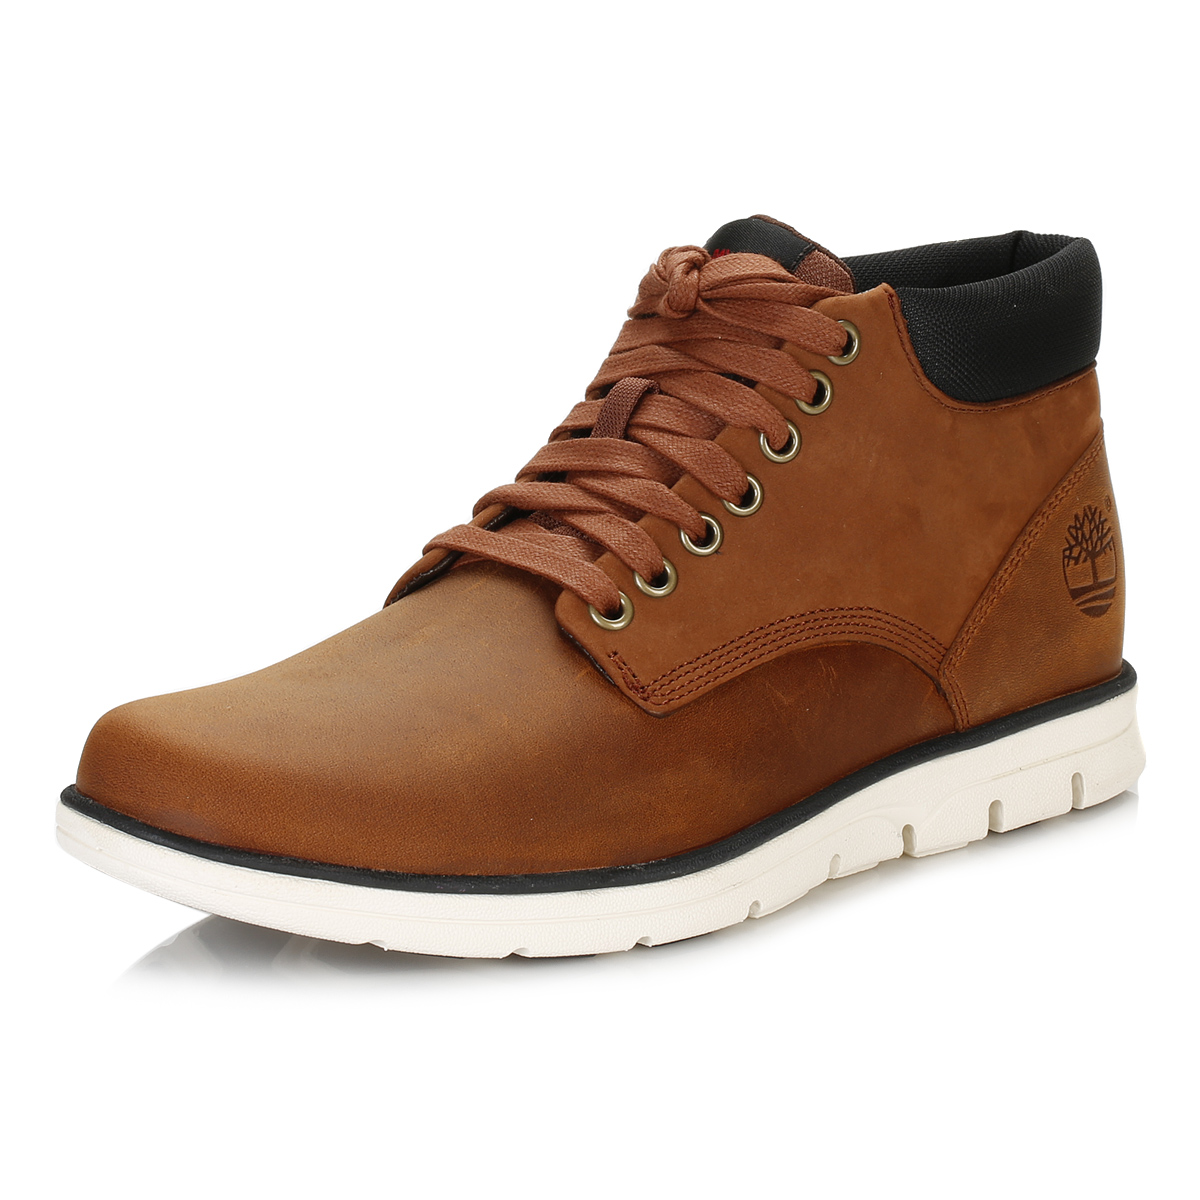 Ee Mens Shoes